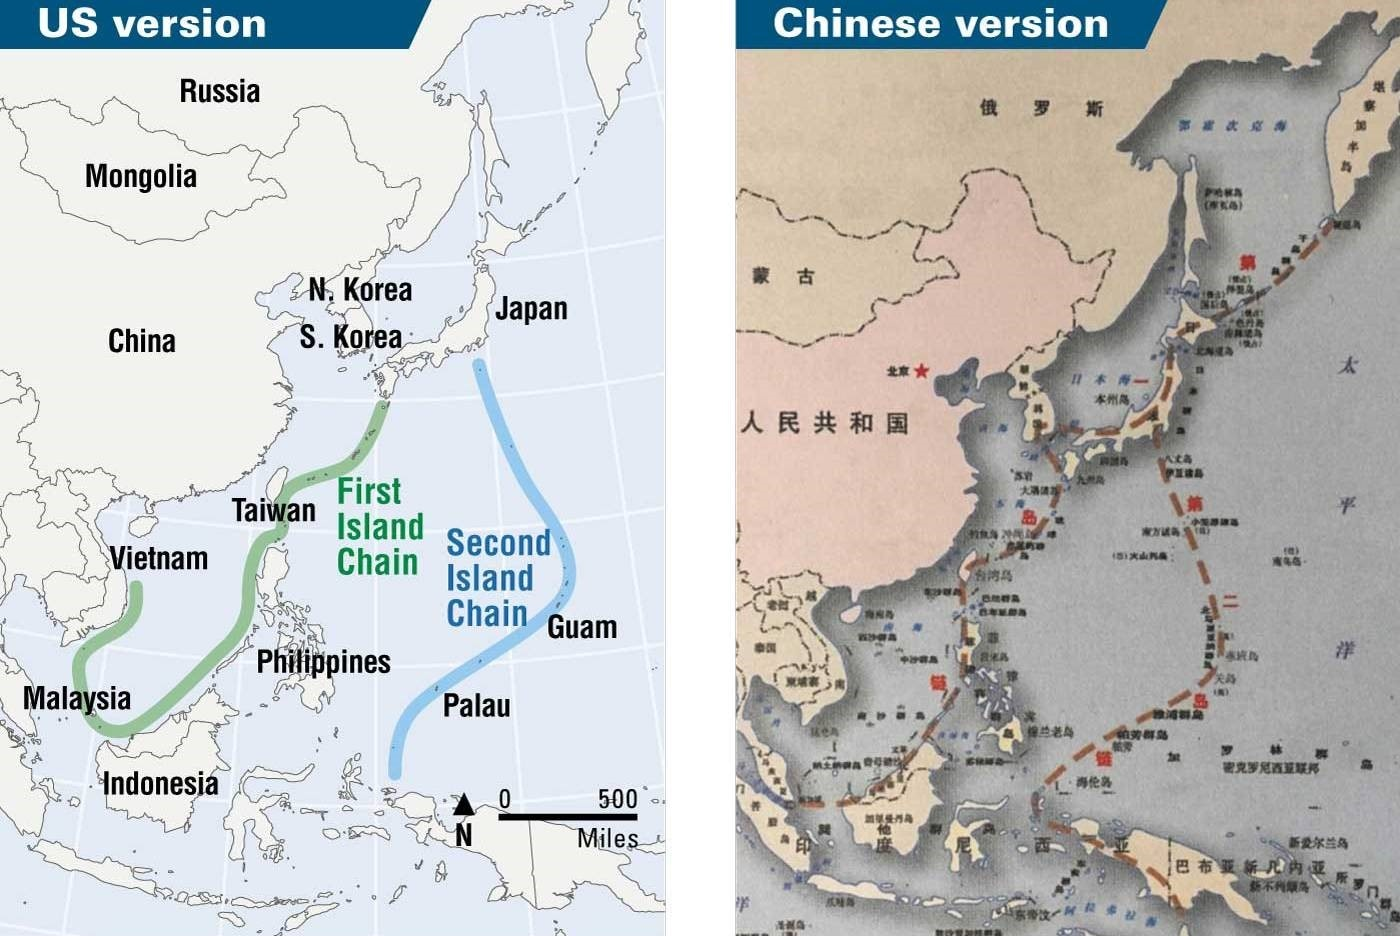 Map showing First and Second Island Chain that China claims